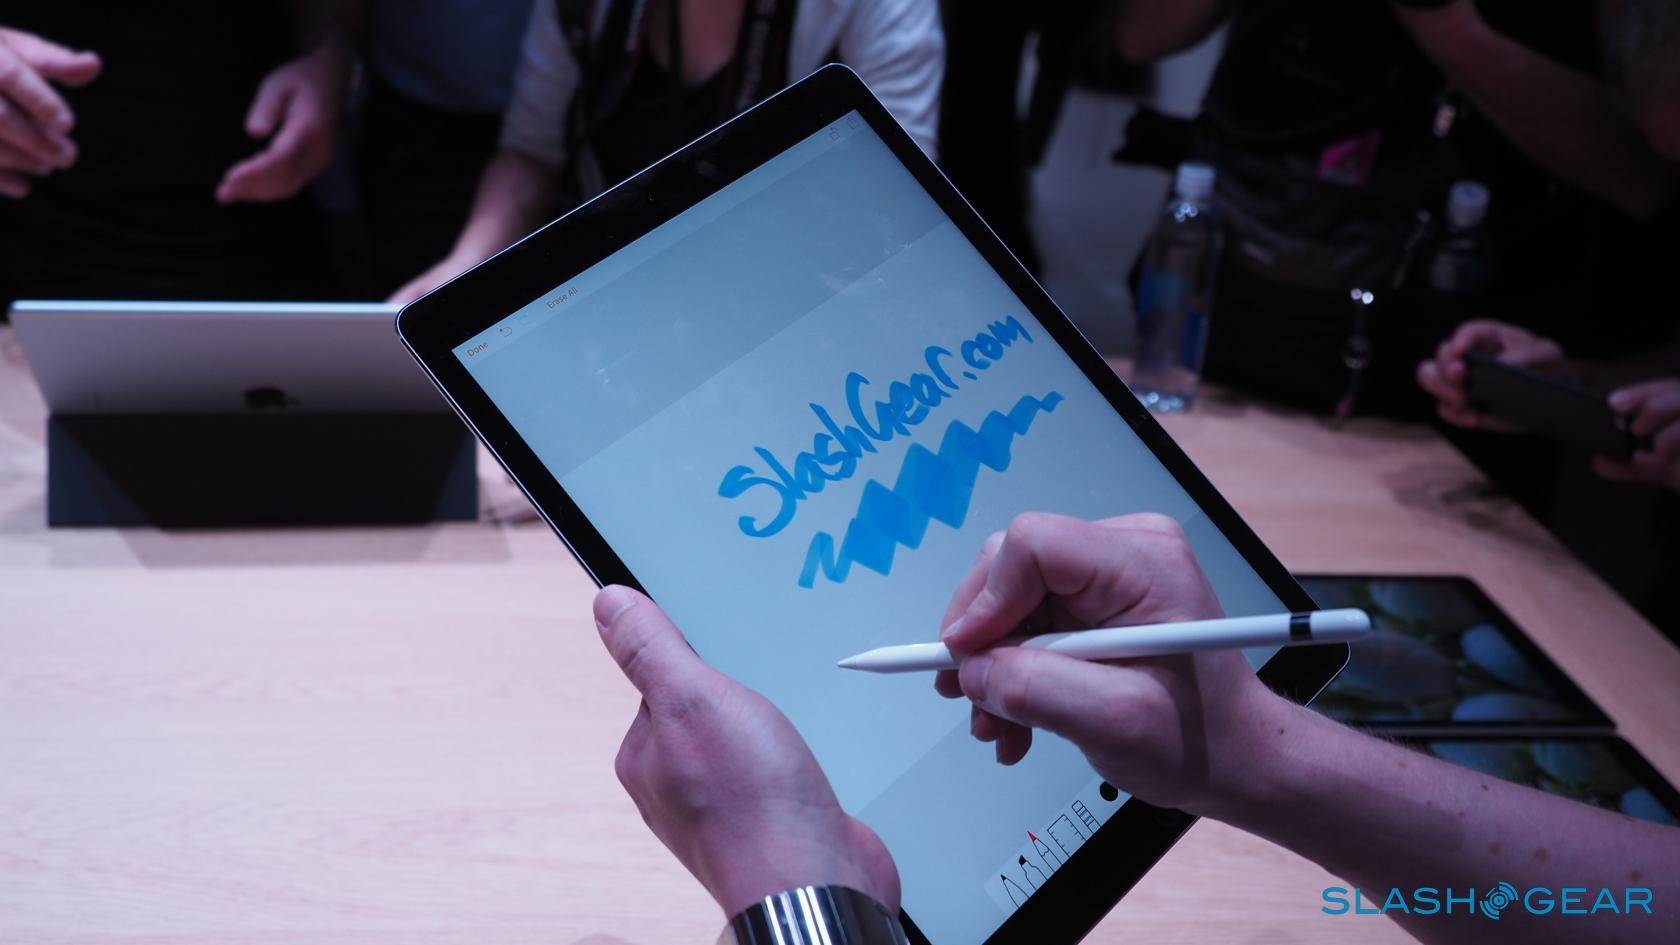 Universal Stylus Initiative: it's about time for a pen